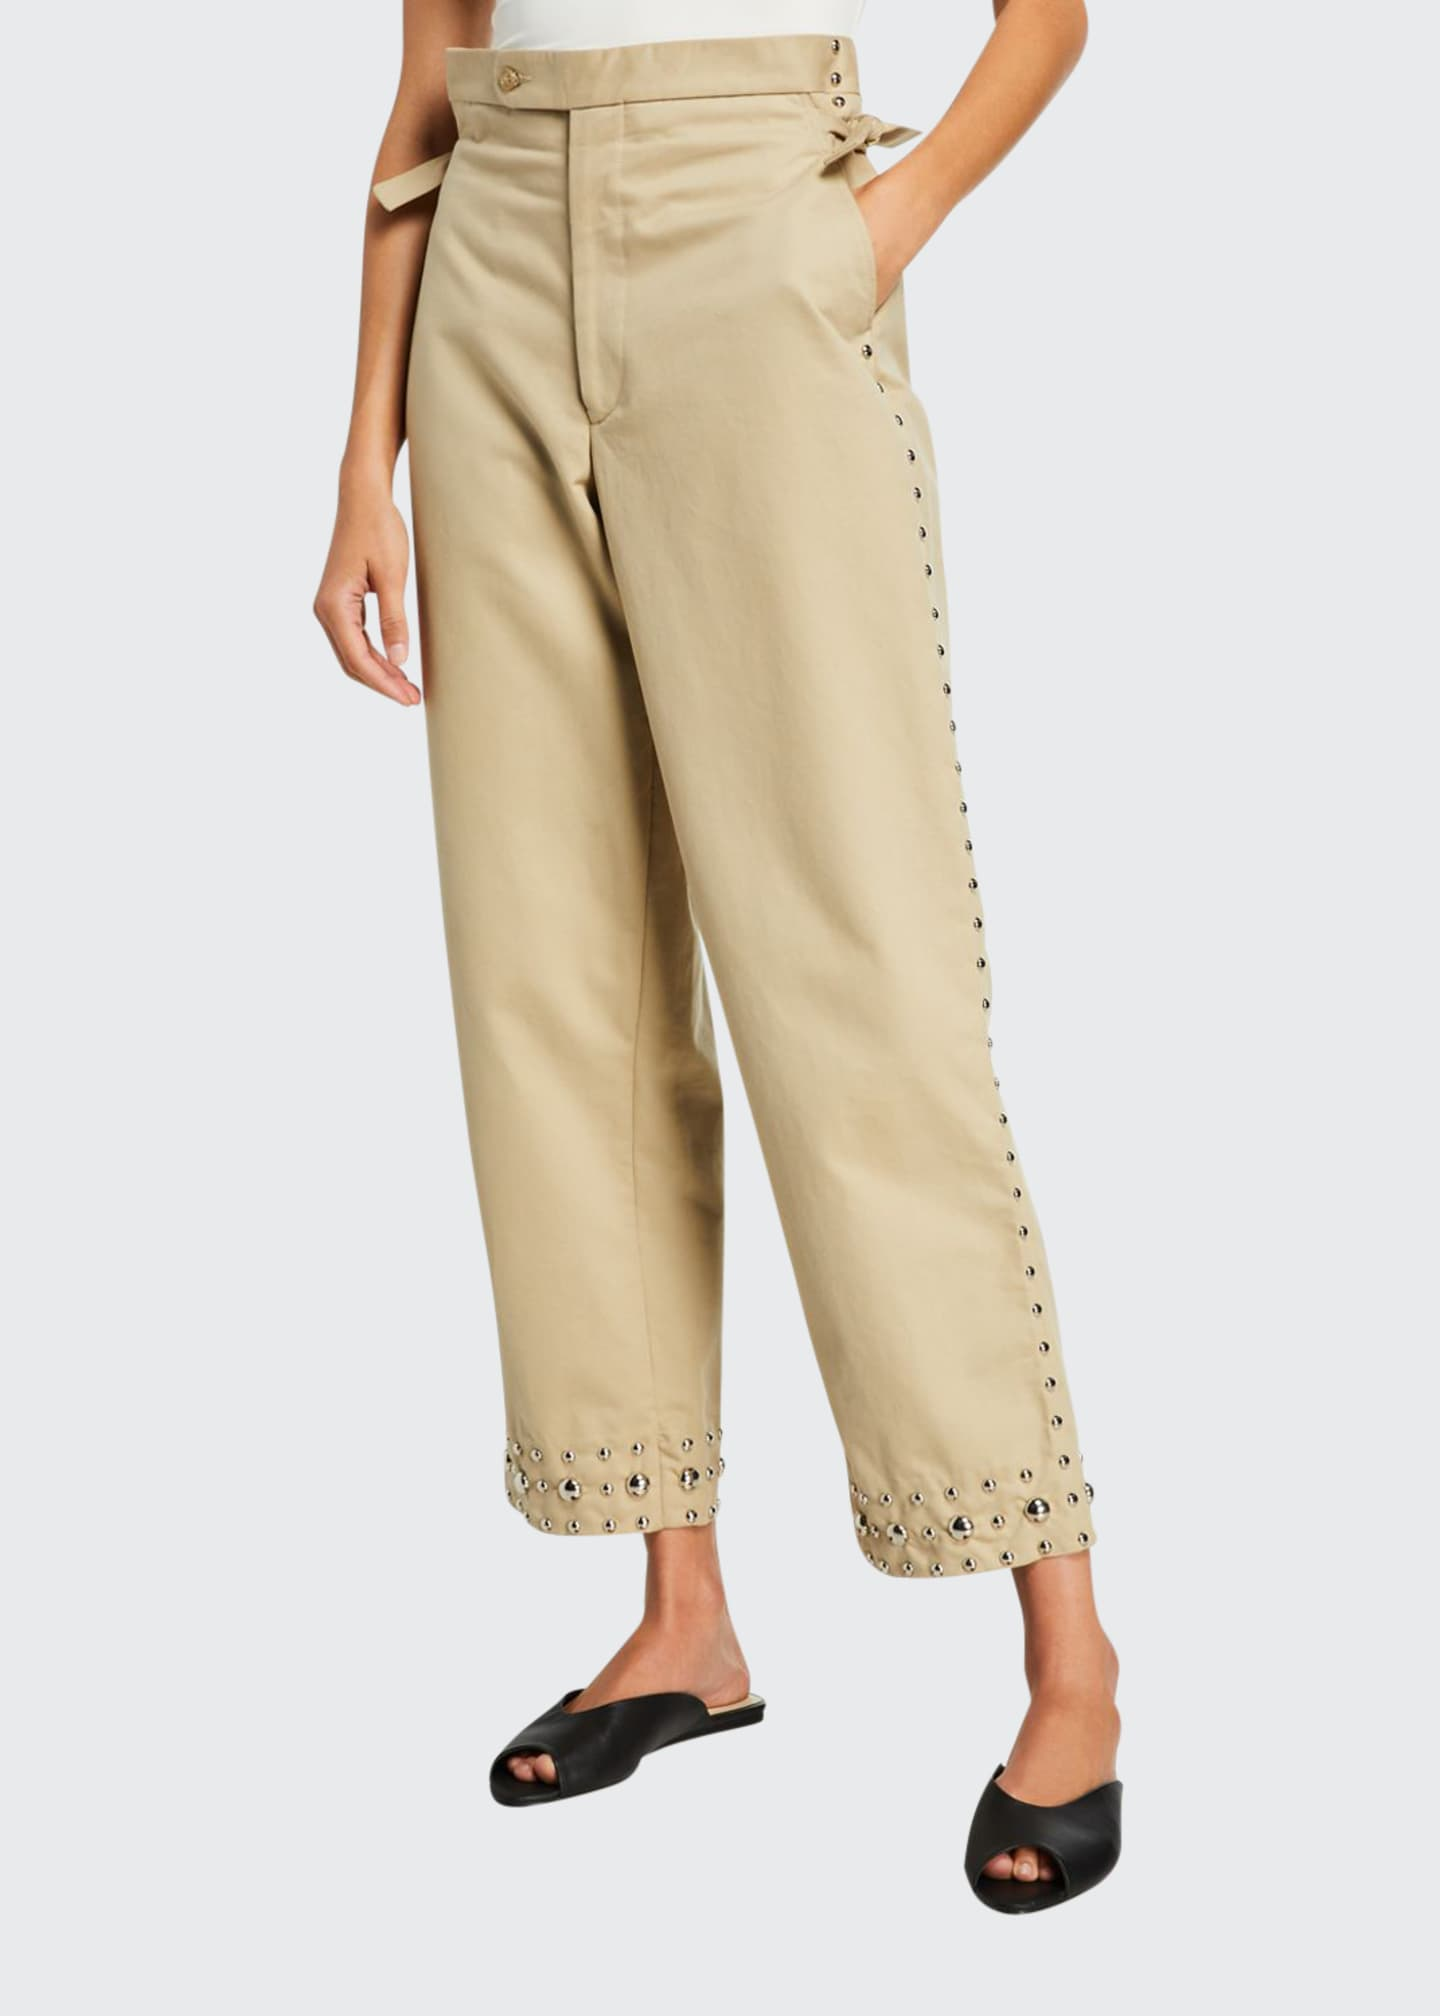 Bode Studded Khaki Side-Tie Trousers